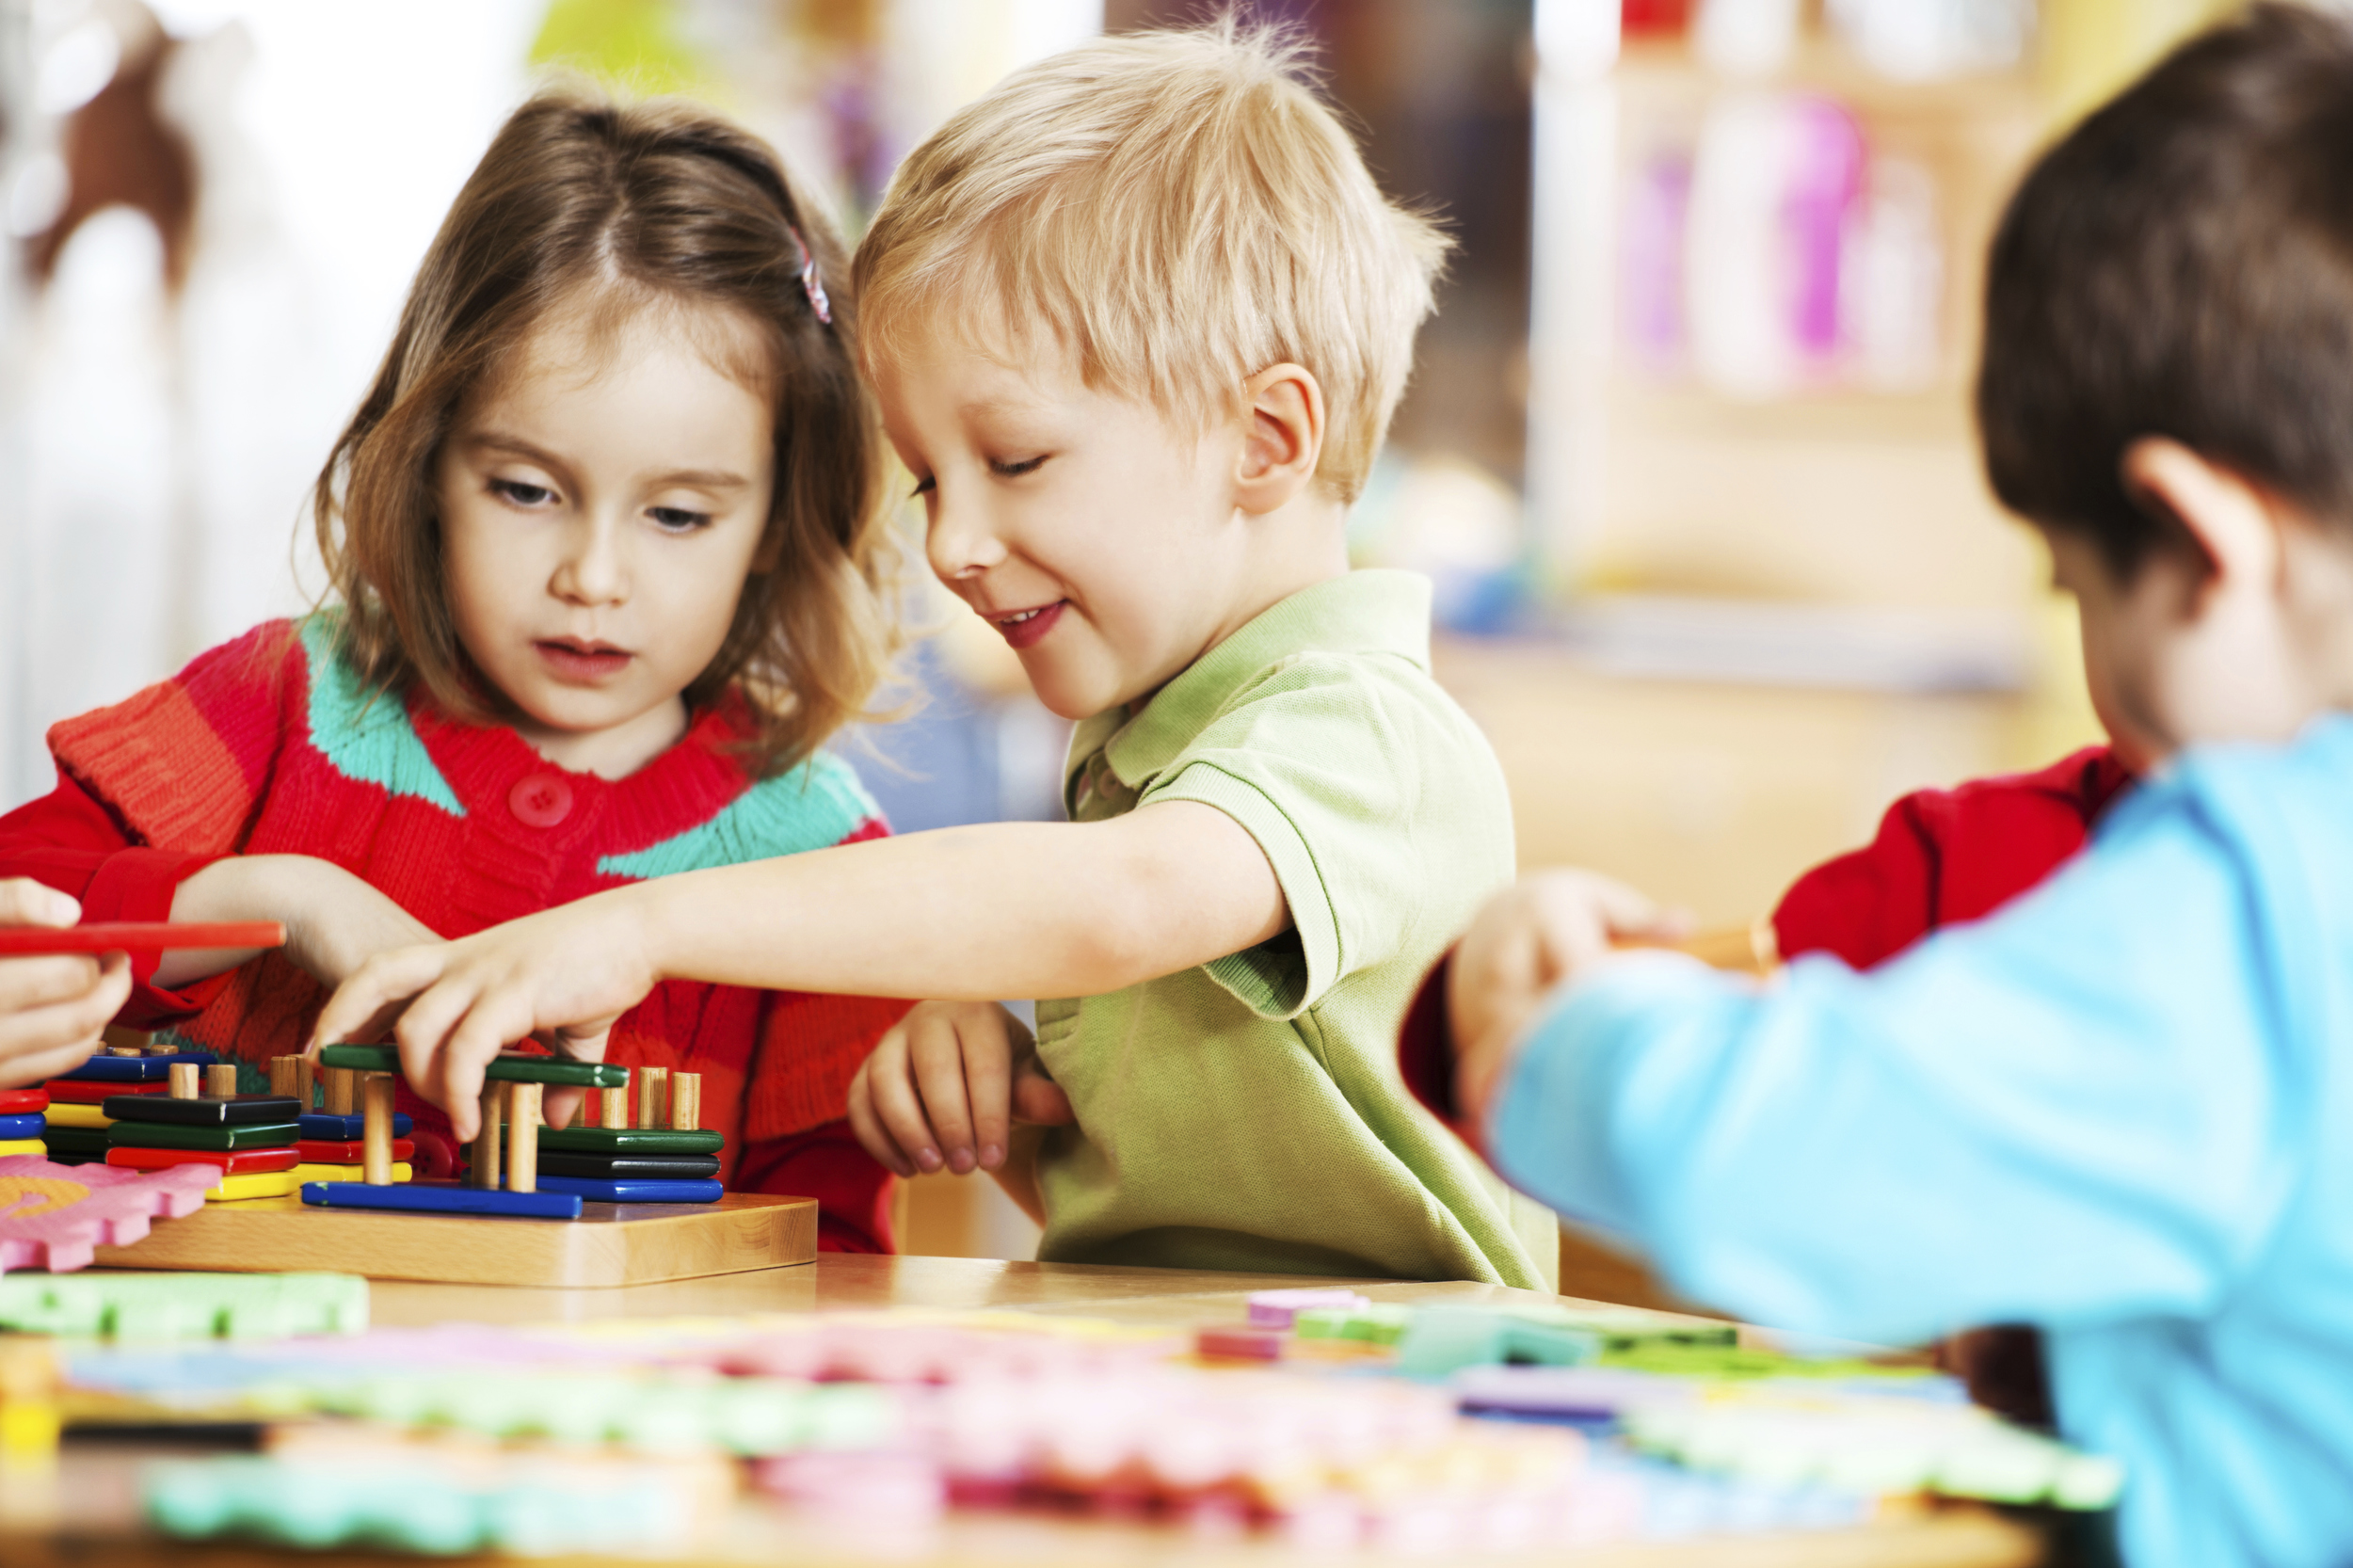 happy-children-playing-together-1.jpg